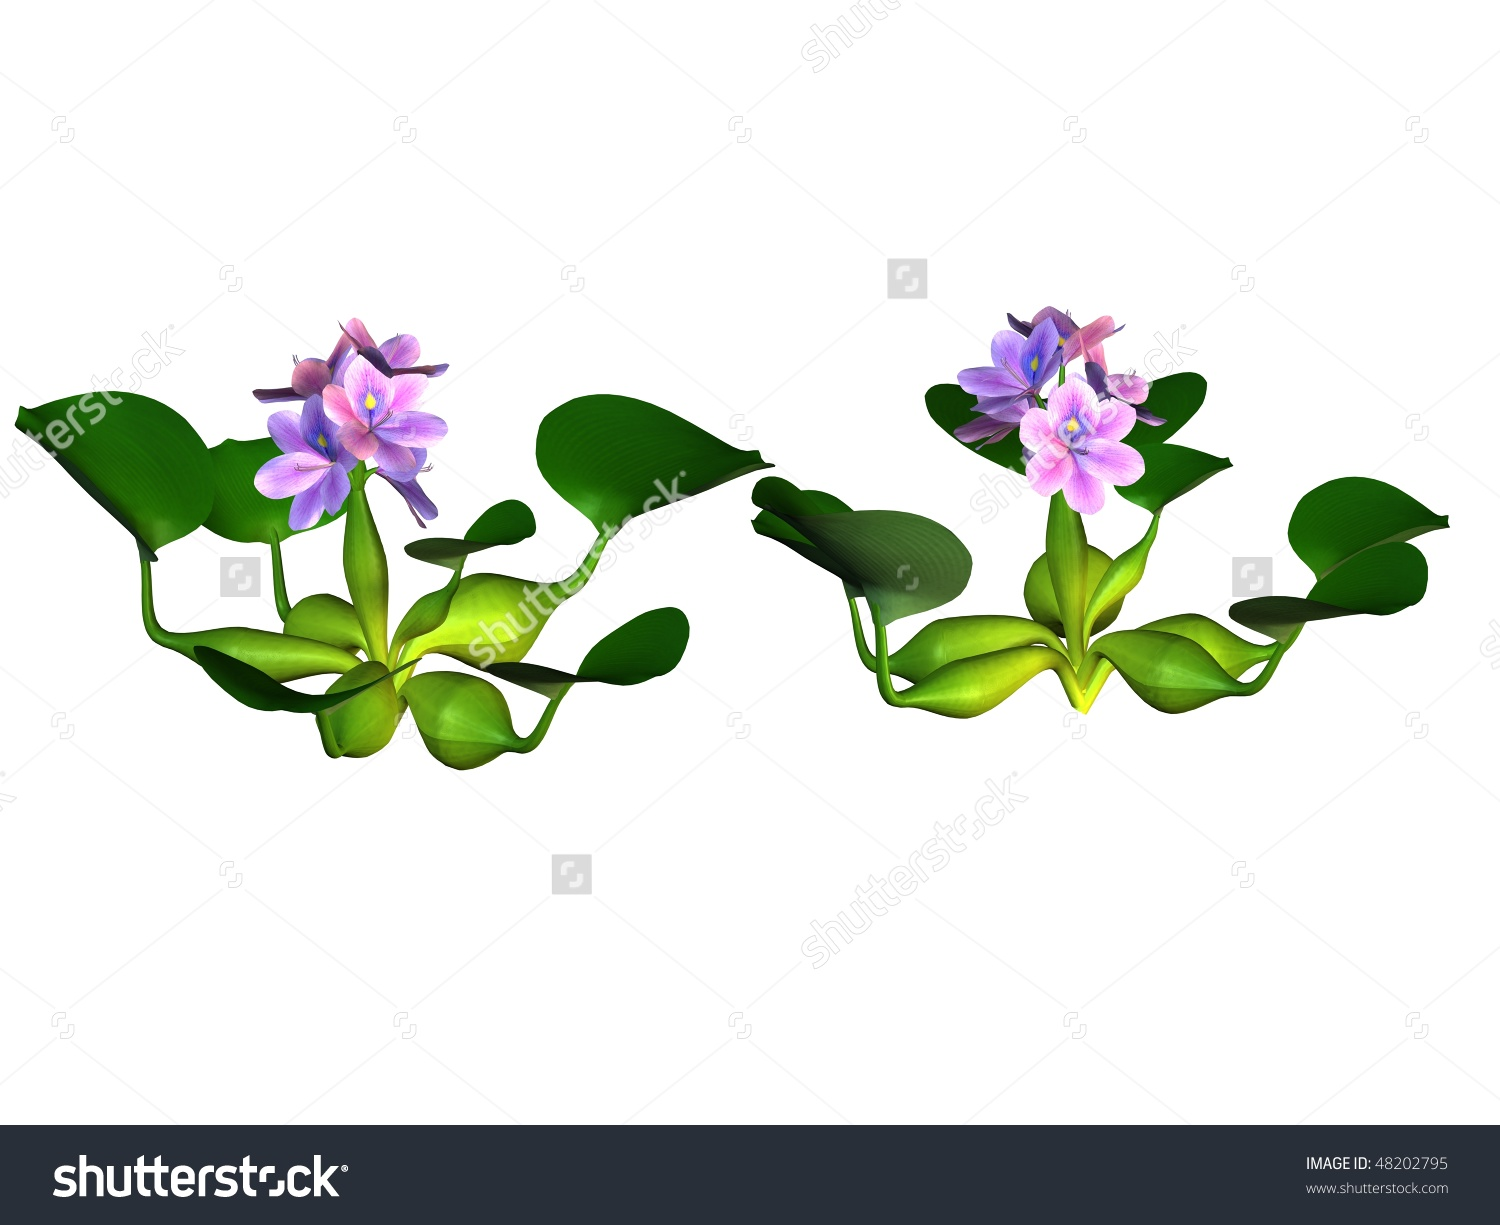 Water hyacinth clipart.